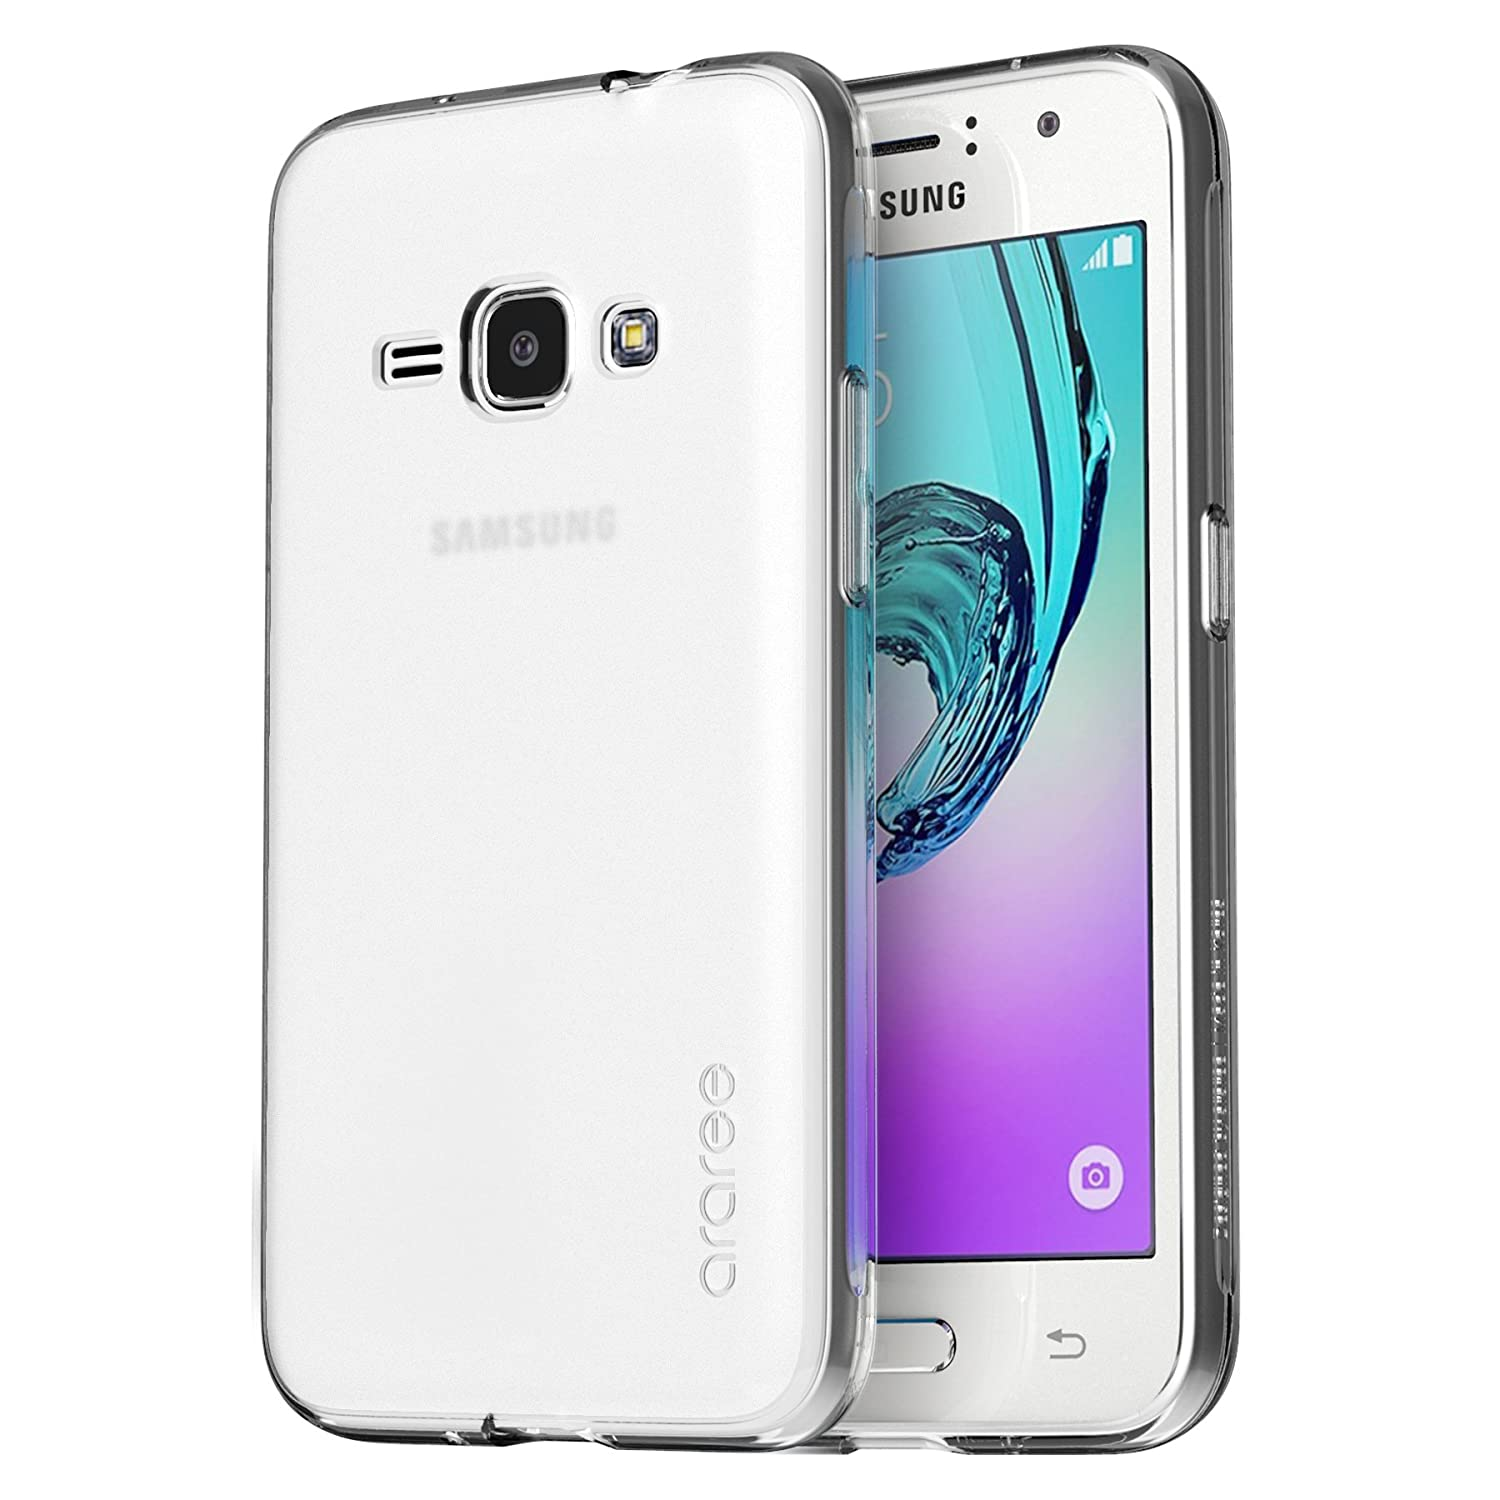 Samsung Galaxy J3 2016 J320 Case Araree J Cover For Clear Gratis Tempered Glass Ultrathin Soft Ultra Slim Thin Frosted Tpu Skin 50 Inch Smasung Eco Package